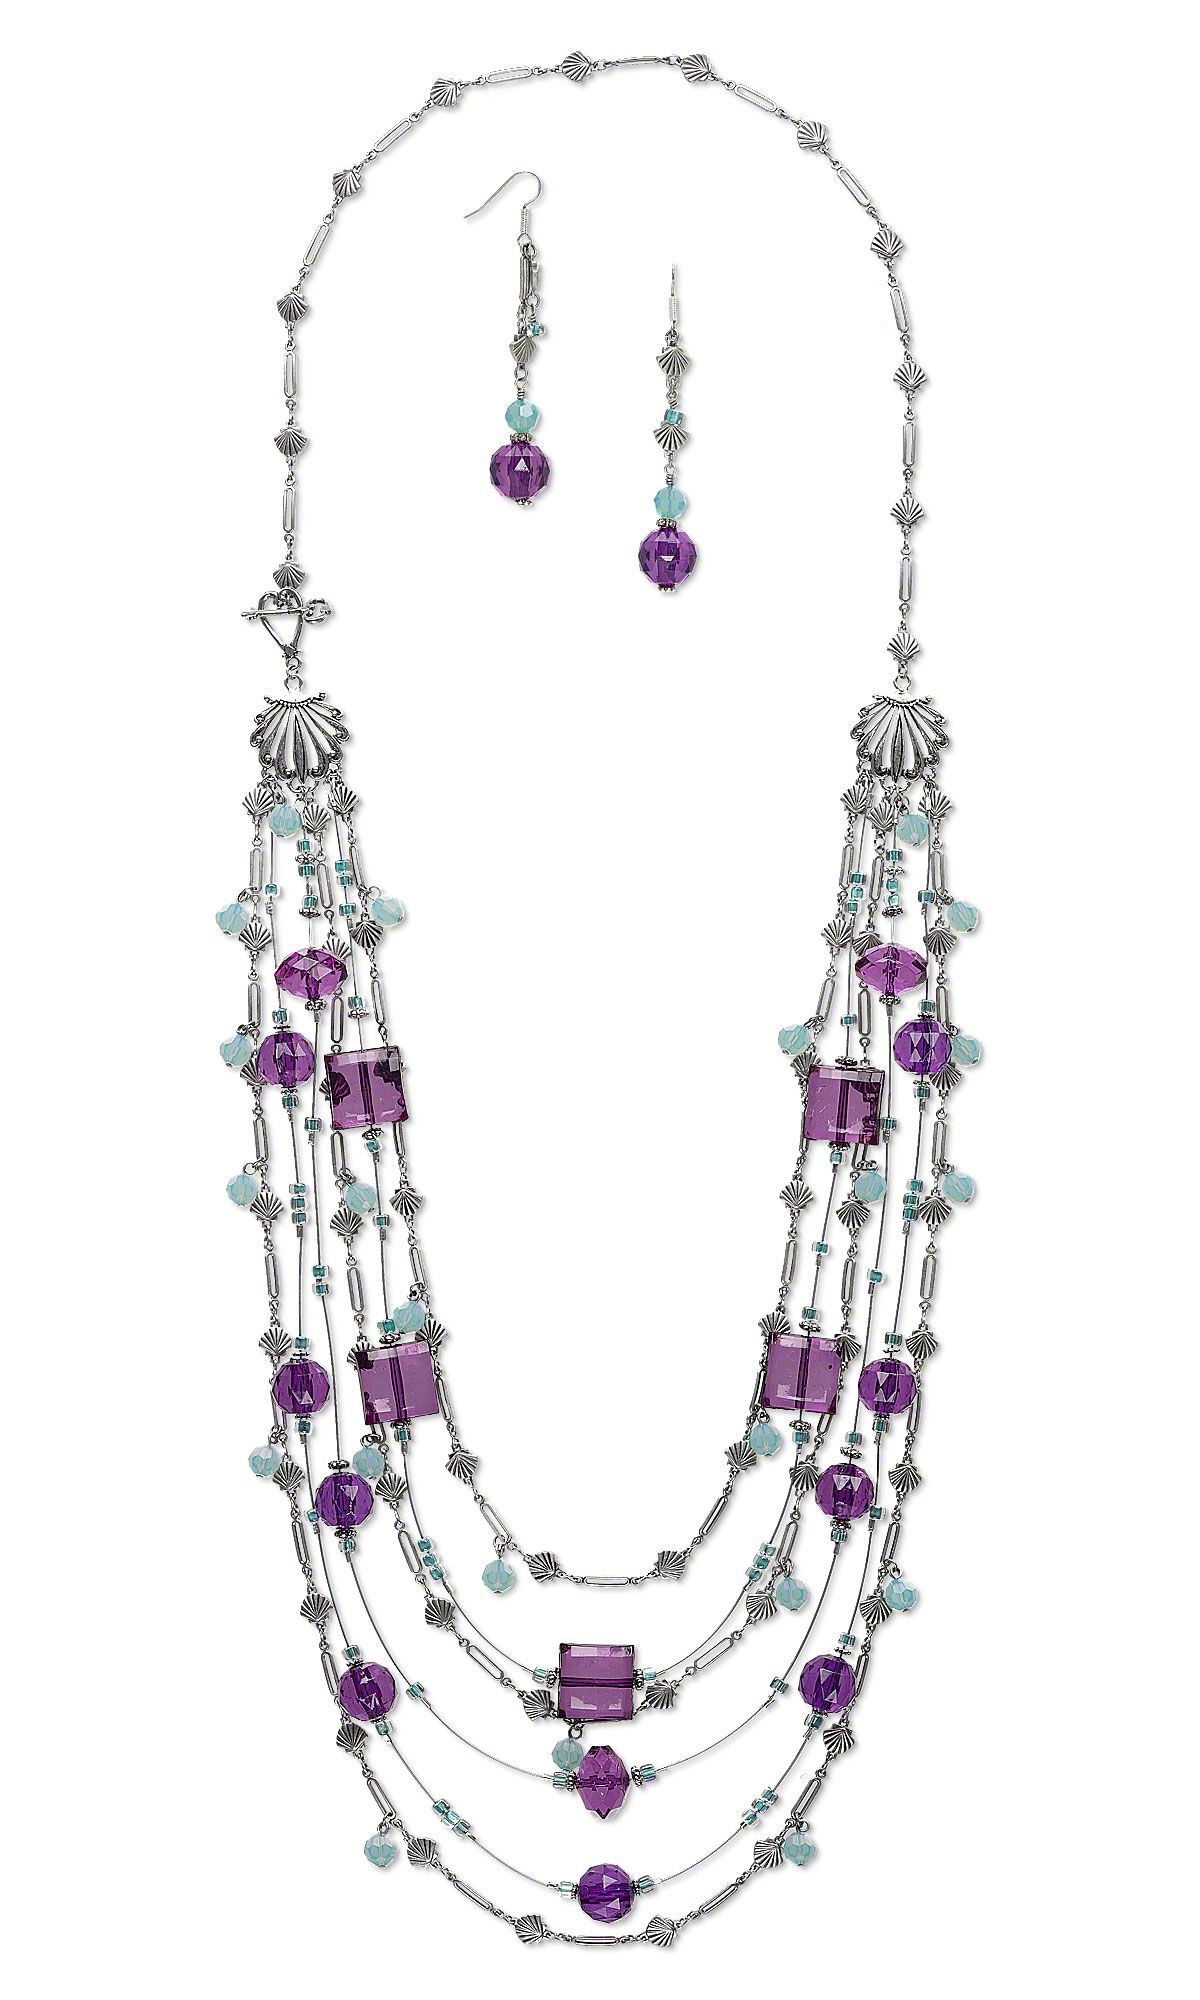 Jewelry Design - Multi-Strand Necklace and Earring Set with Acrylic ...